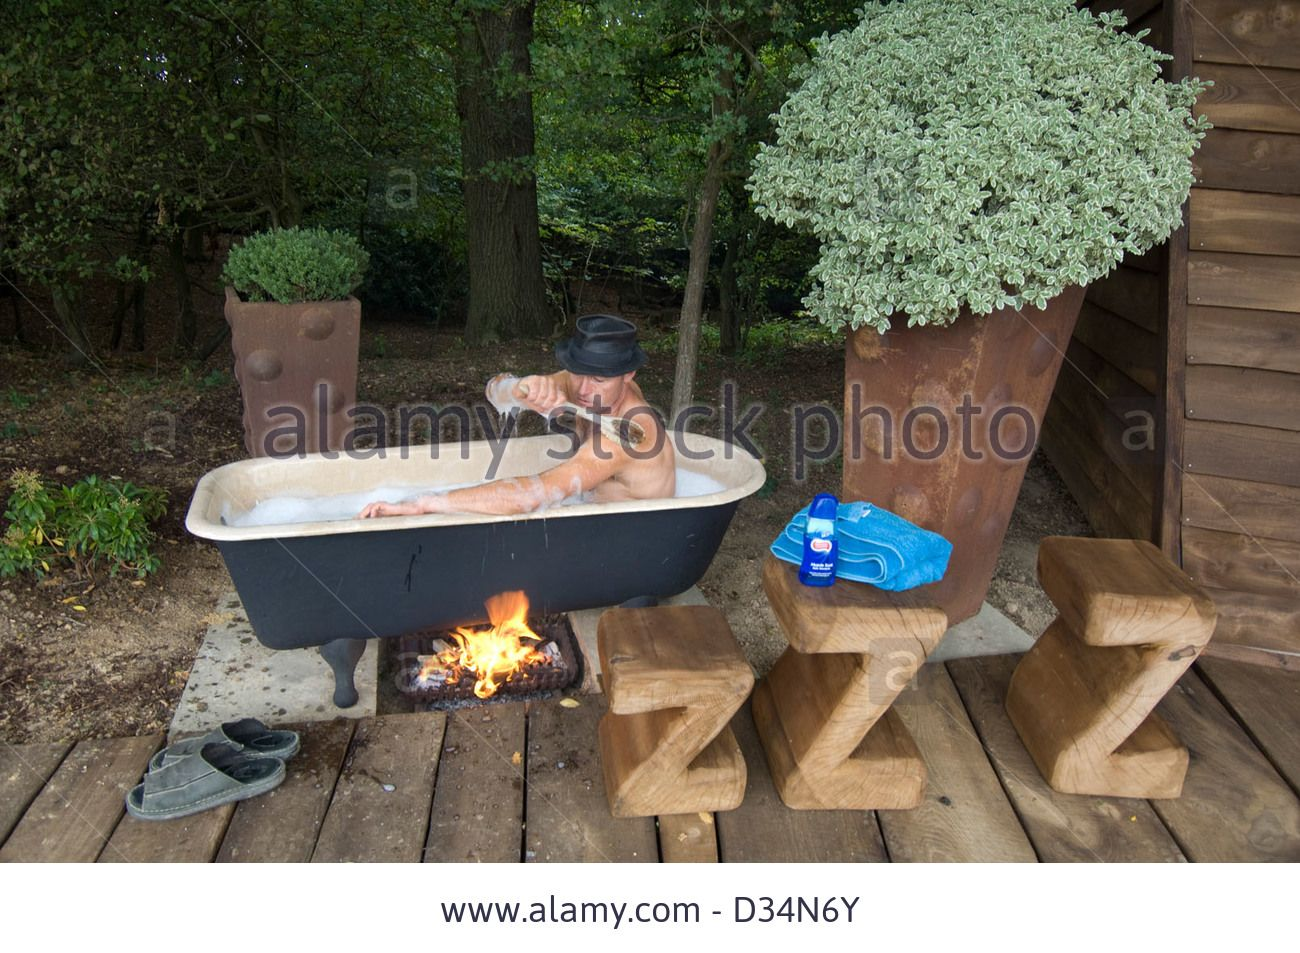 fire heated bath google search backyard hot tub pinterest outdoor badewanne gartenideen. Black Bedroom Furniture Sets. Home Design Ideas